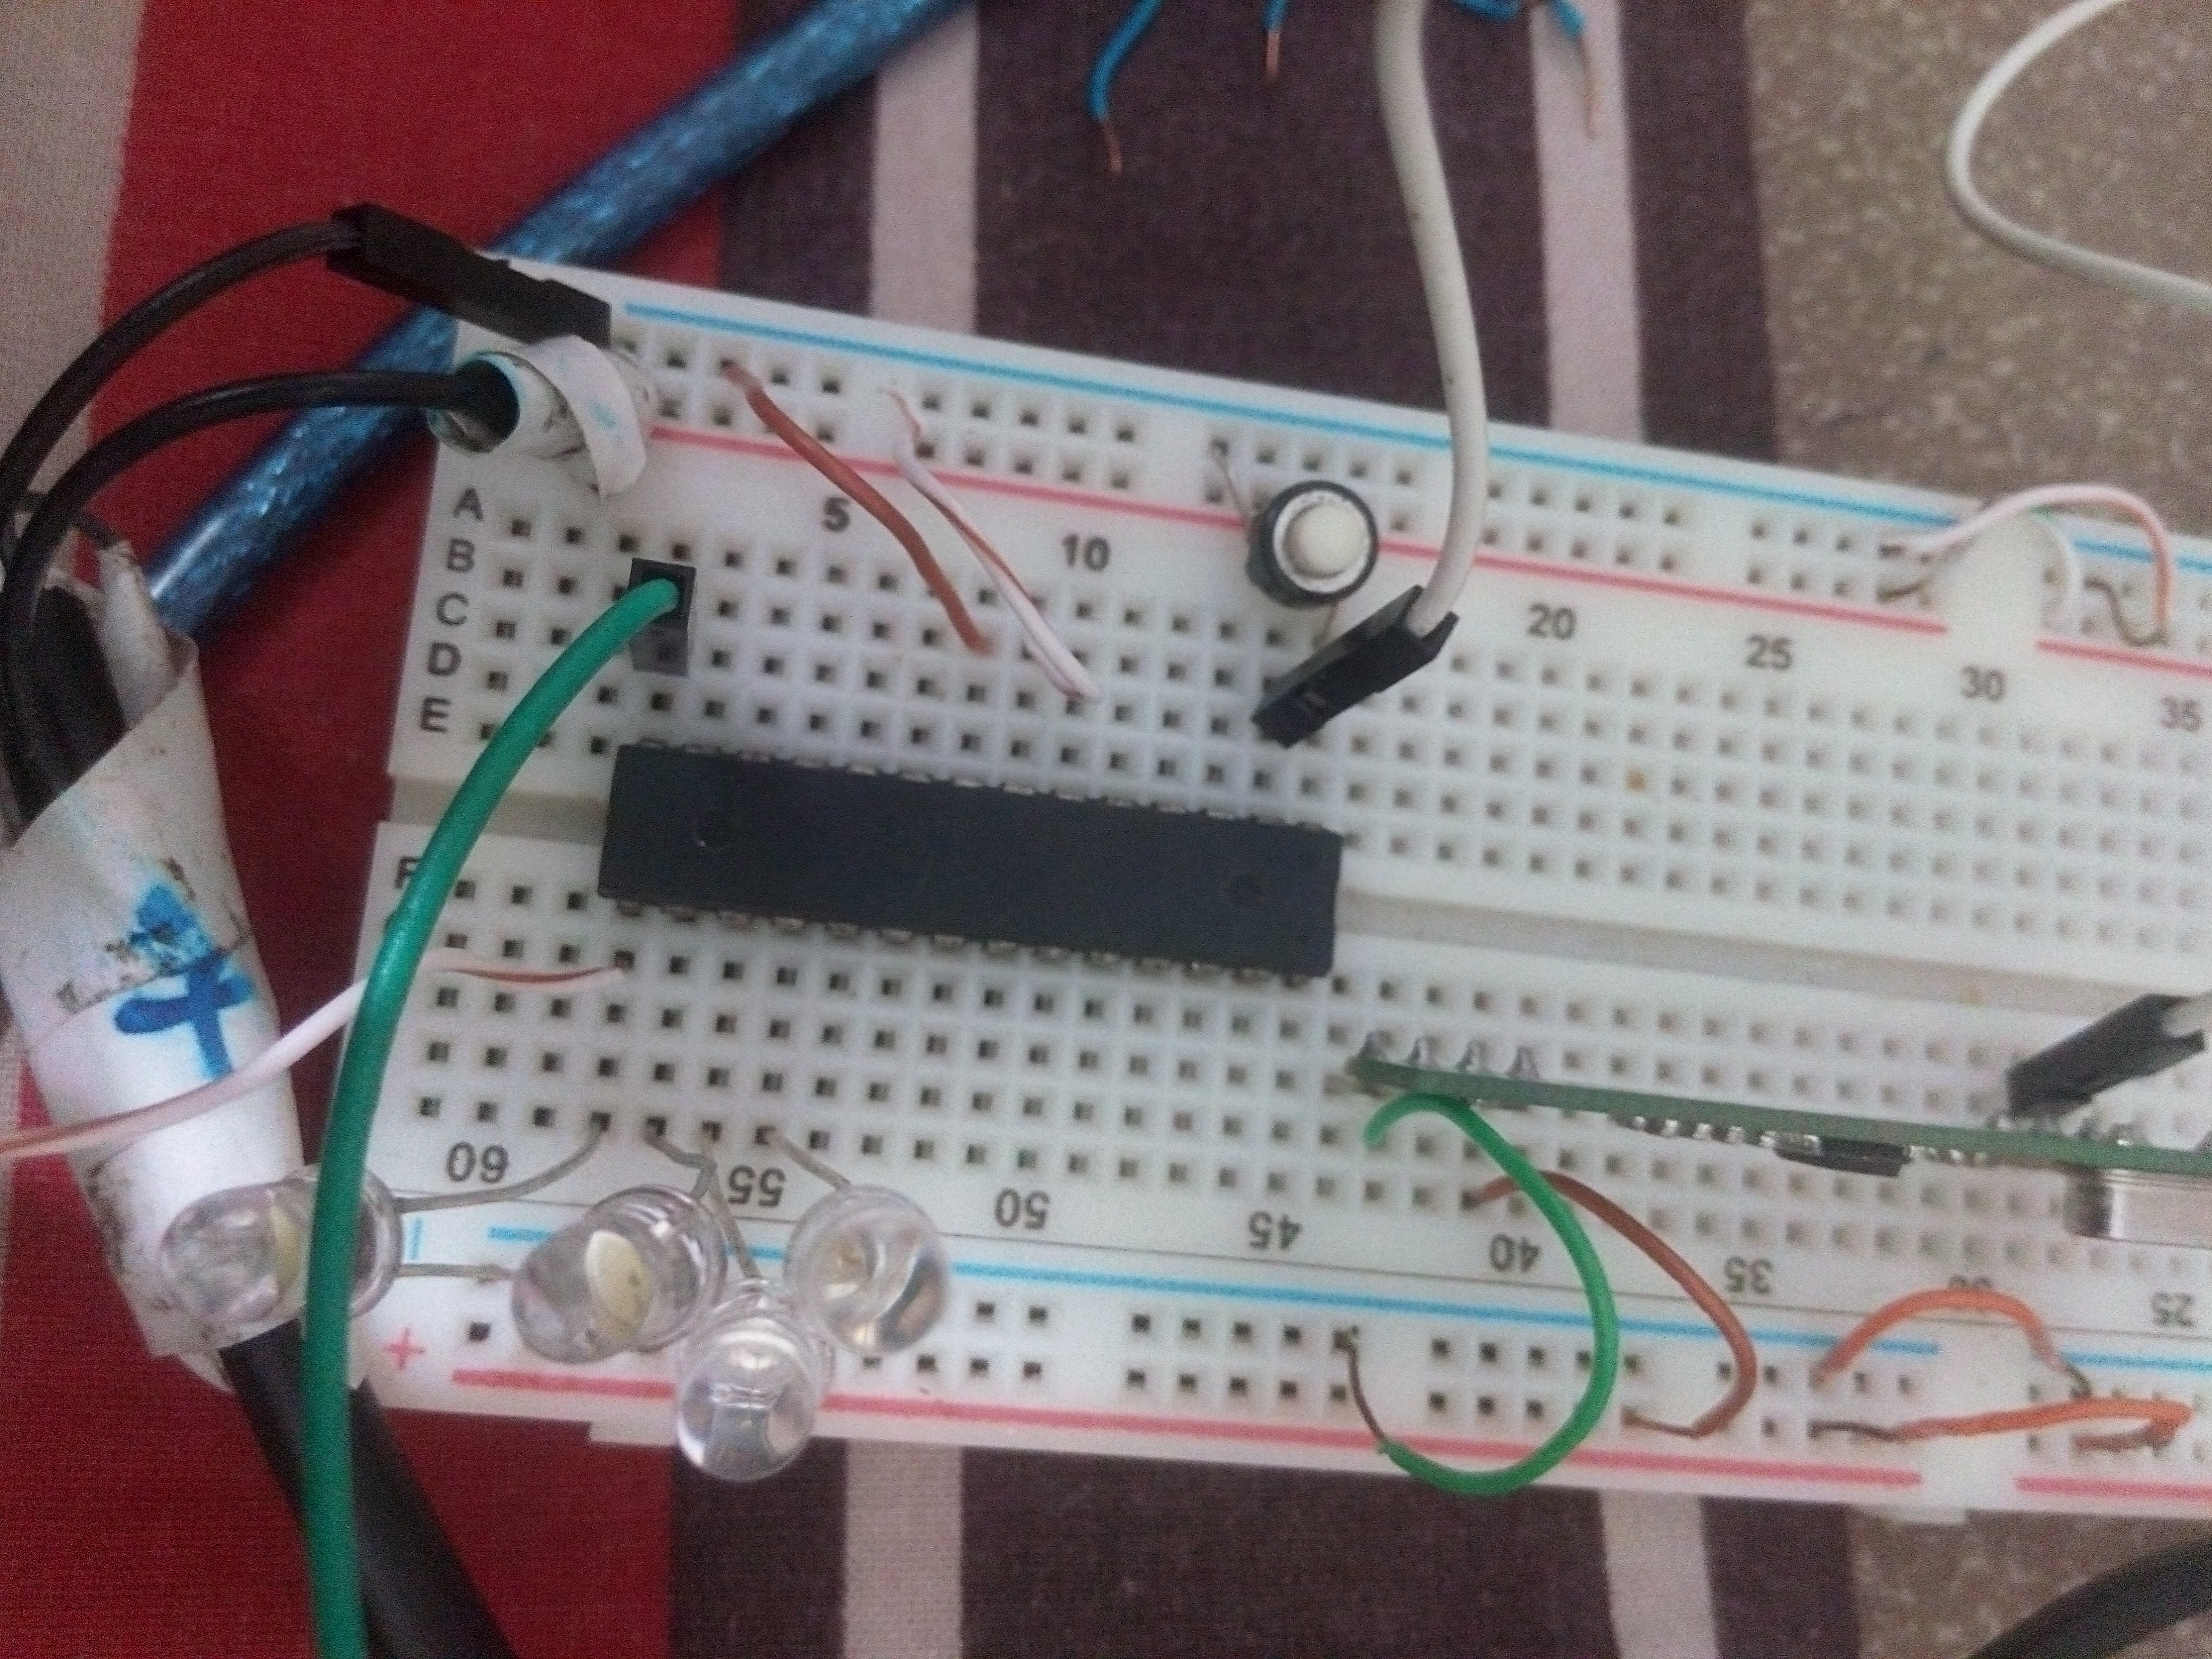 Rf Based Remote Controlled Car Not Responding Need Help Avr Solved My Circuit Receiver Mcu